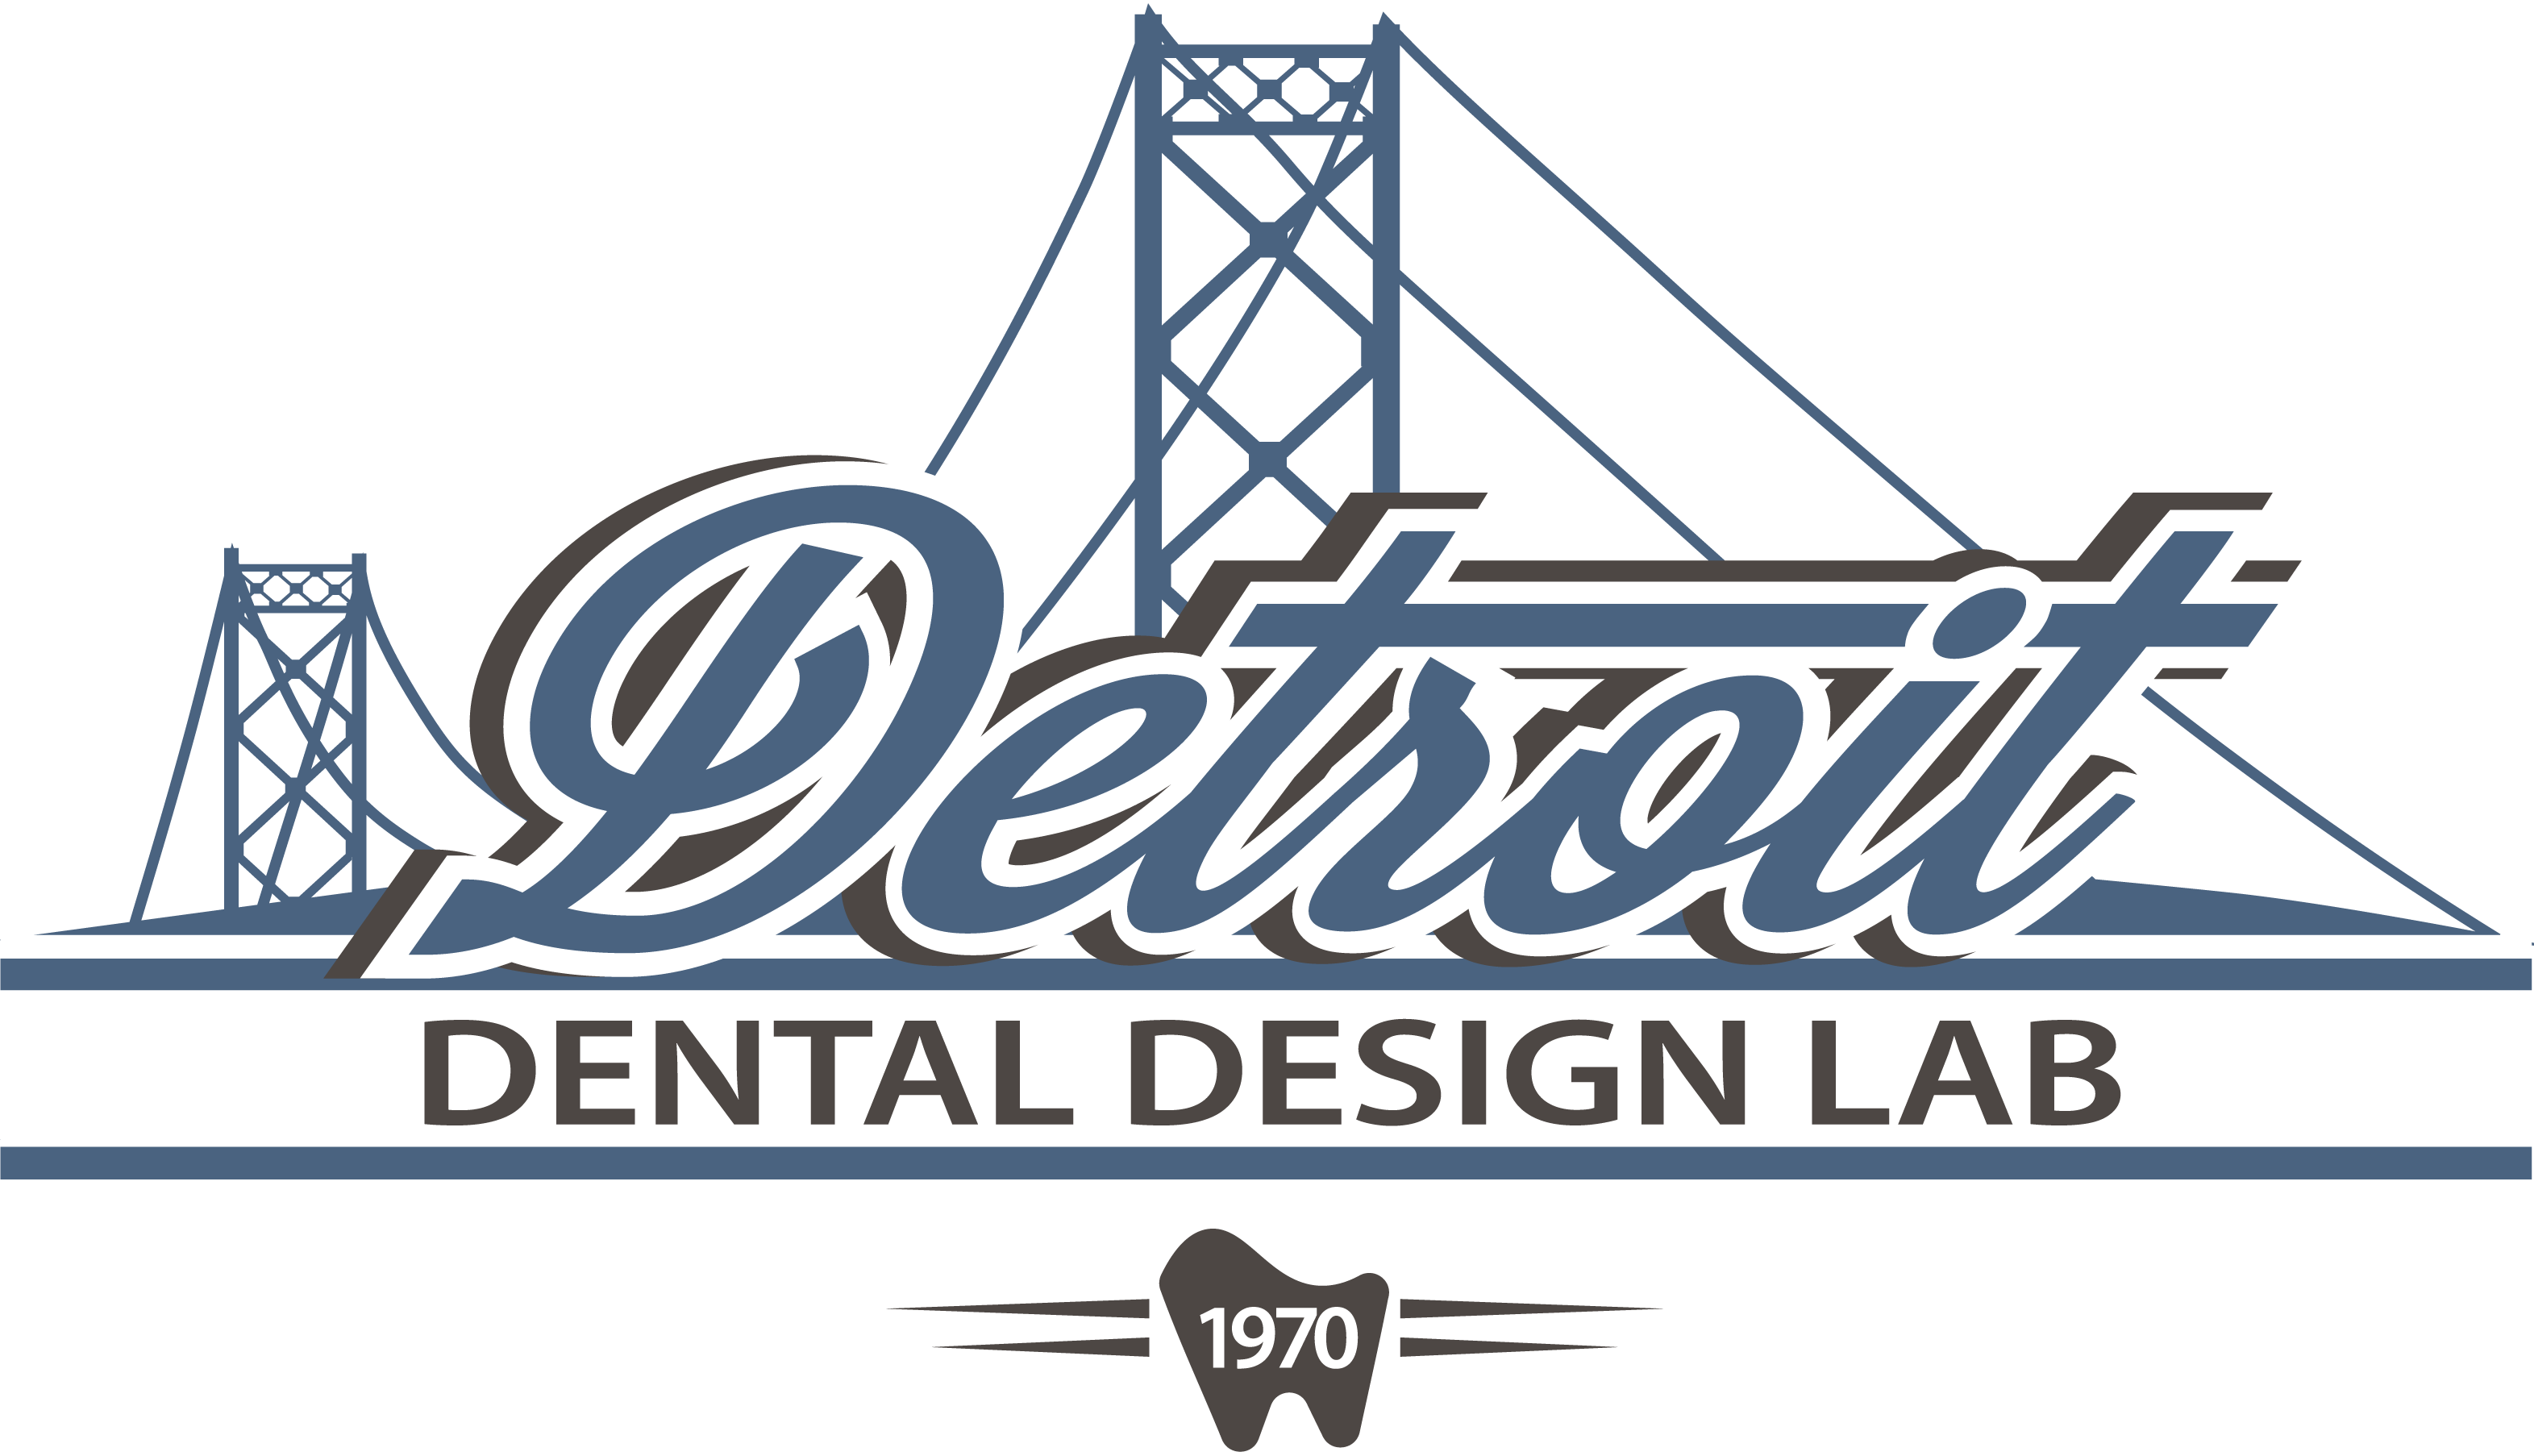 detroit dental design logo